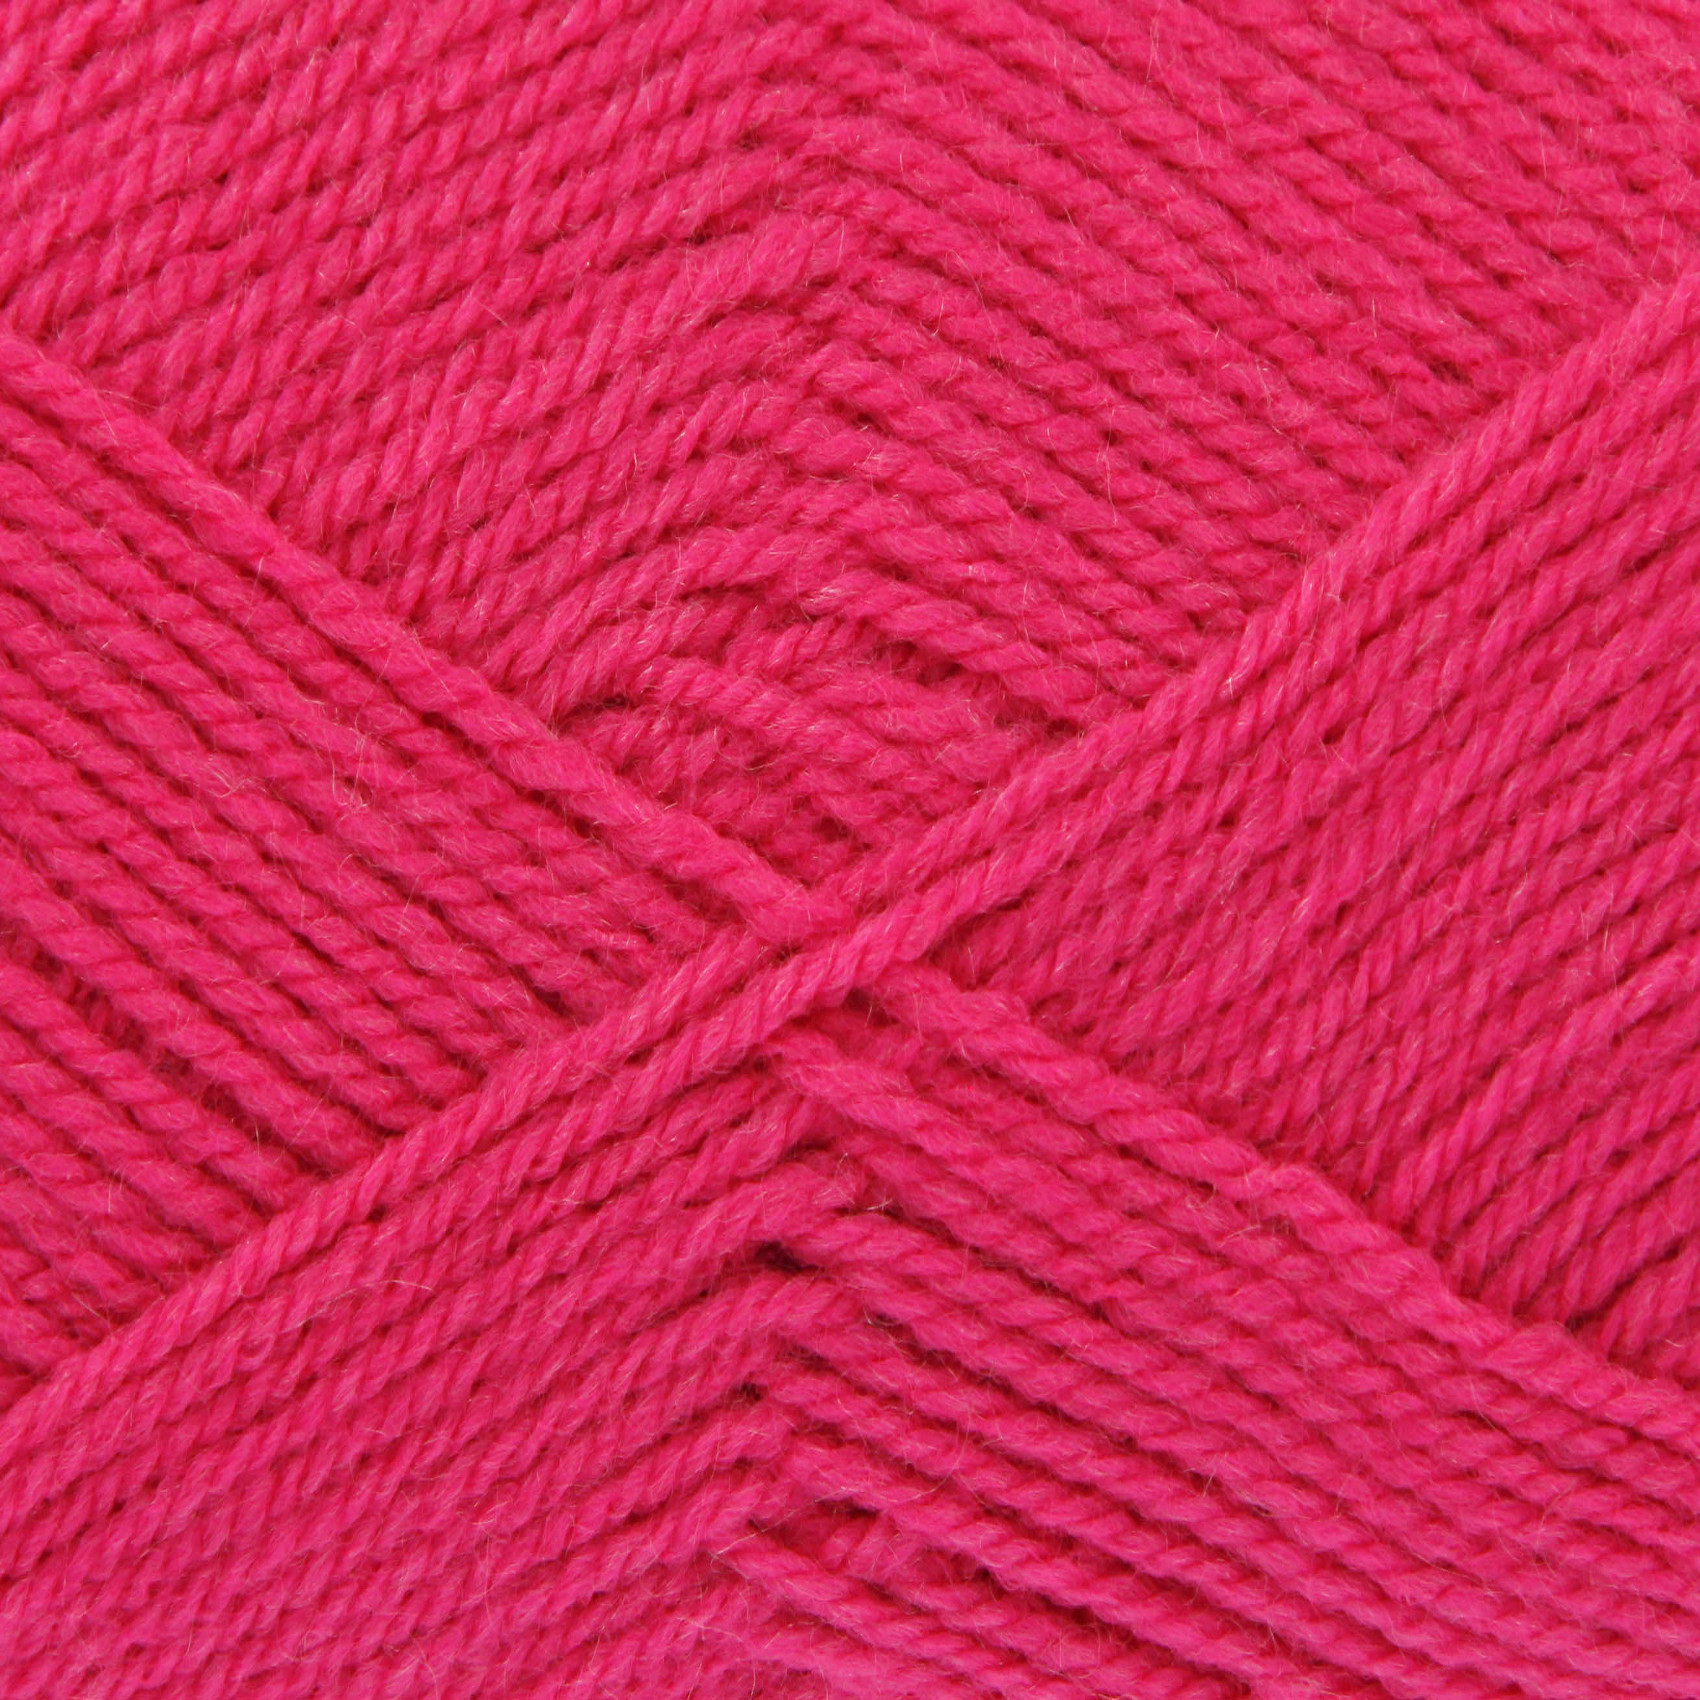 Double Knit Patterns Free : Double Knit 100g Ball Comfort Baby DK Yarn Wool King Cole Free Knitting Patte...